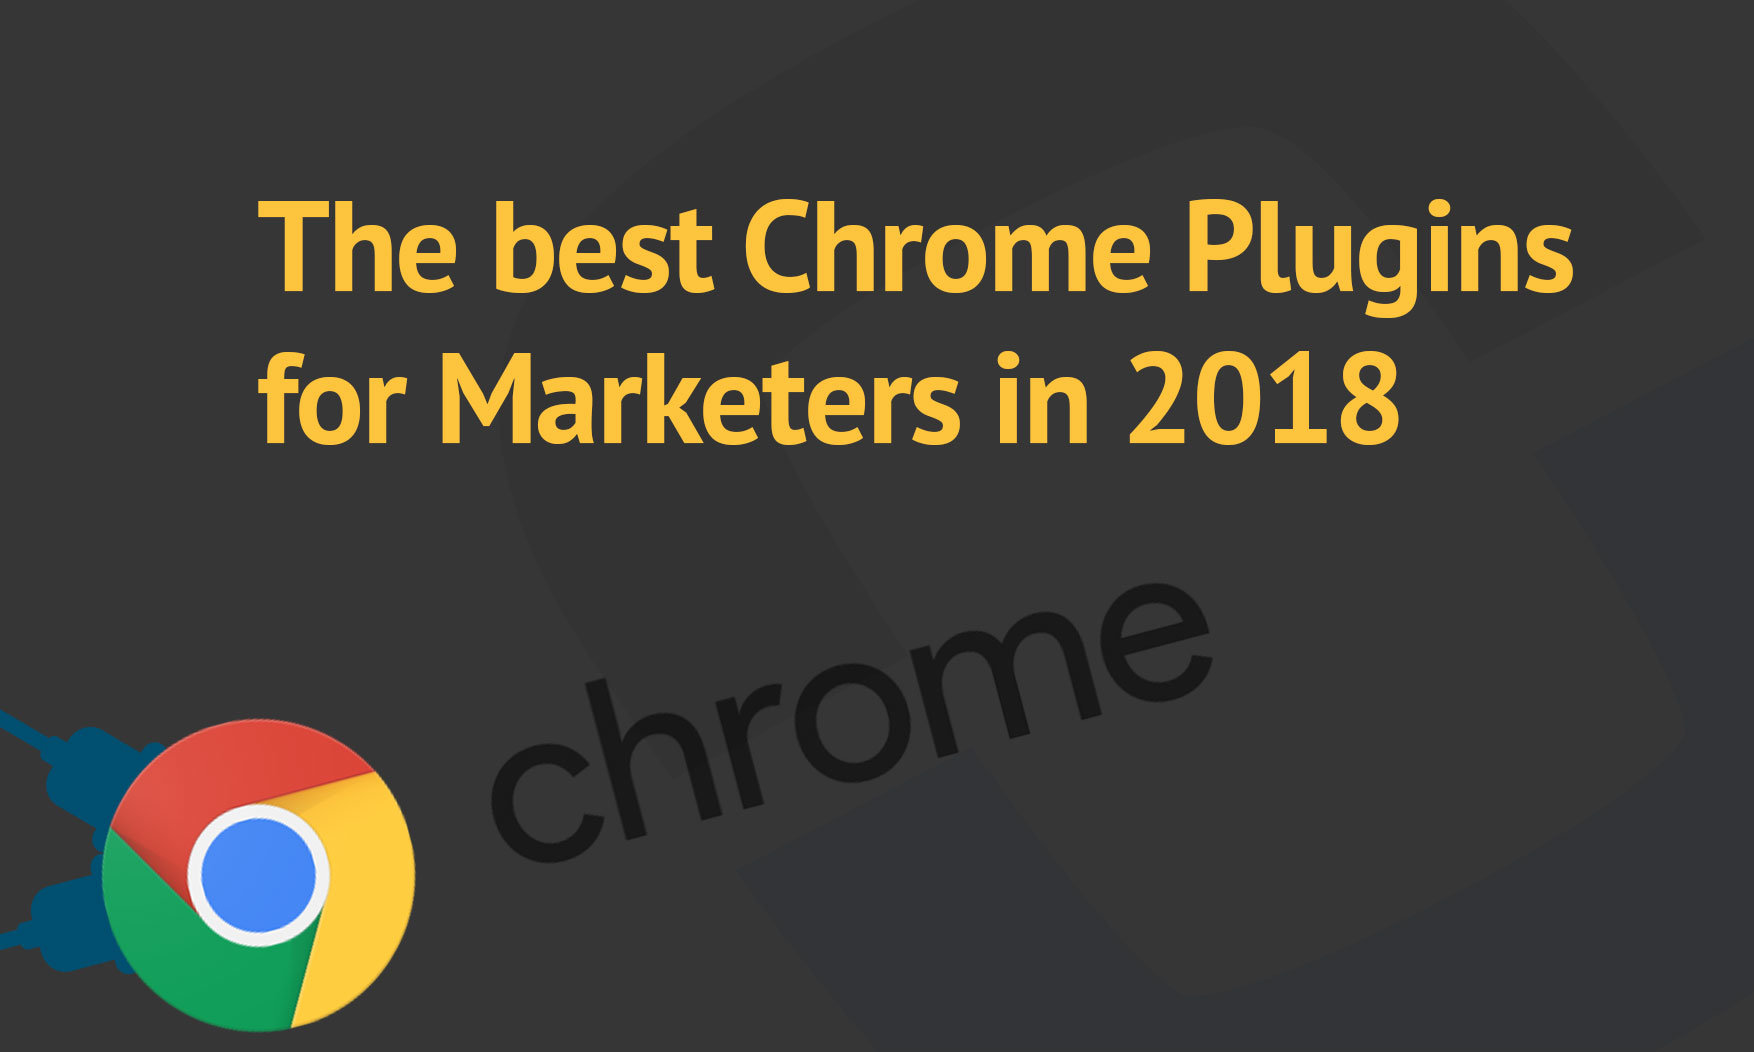 The best Chrome Plugins for Marketers in 2018 (SEO, Content, Social...)